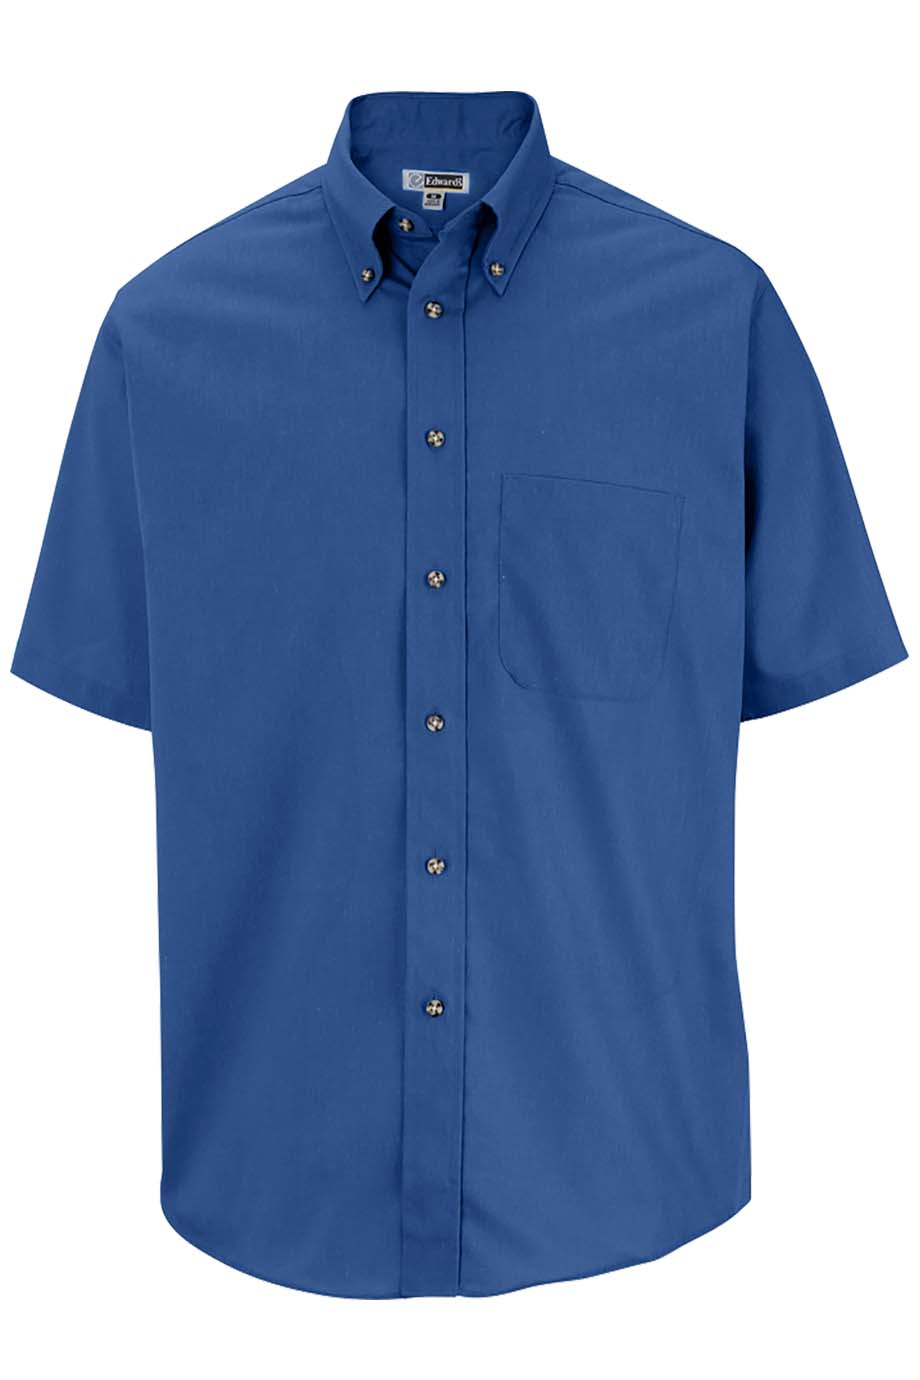 French Blue Edwards Mens Easy Care Short Sleeve Poplin Shirt